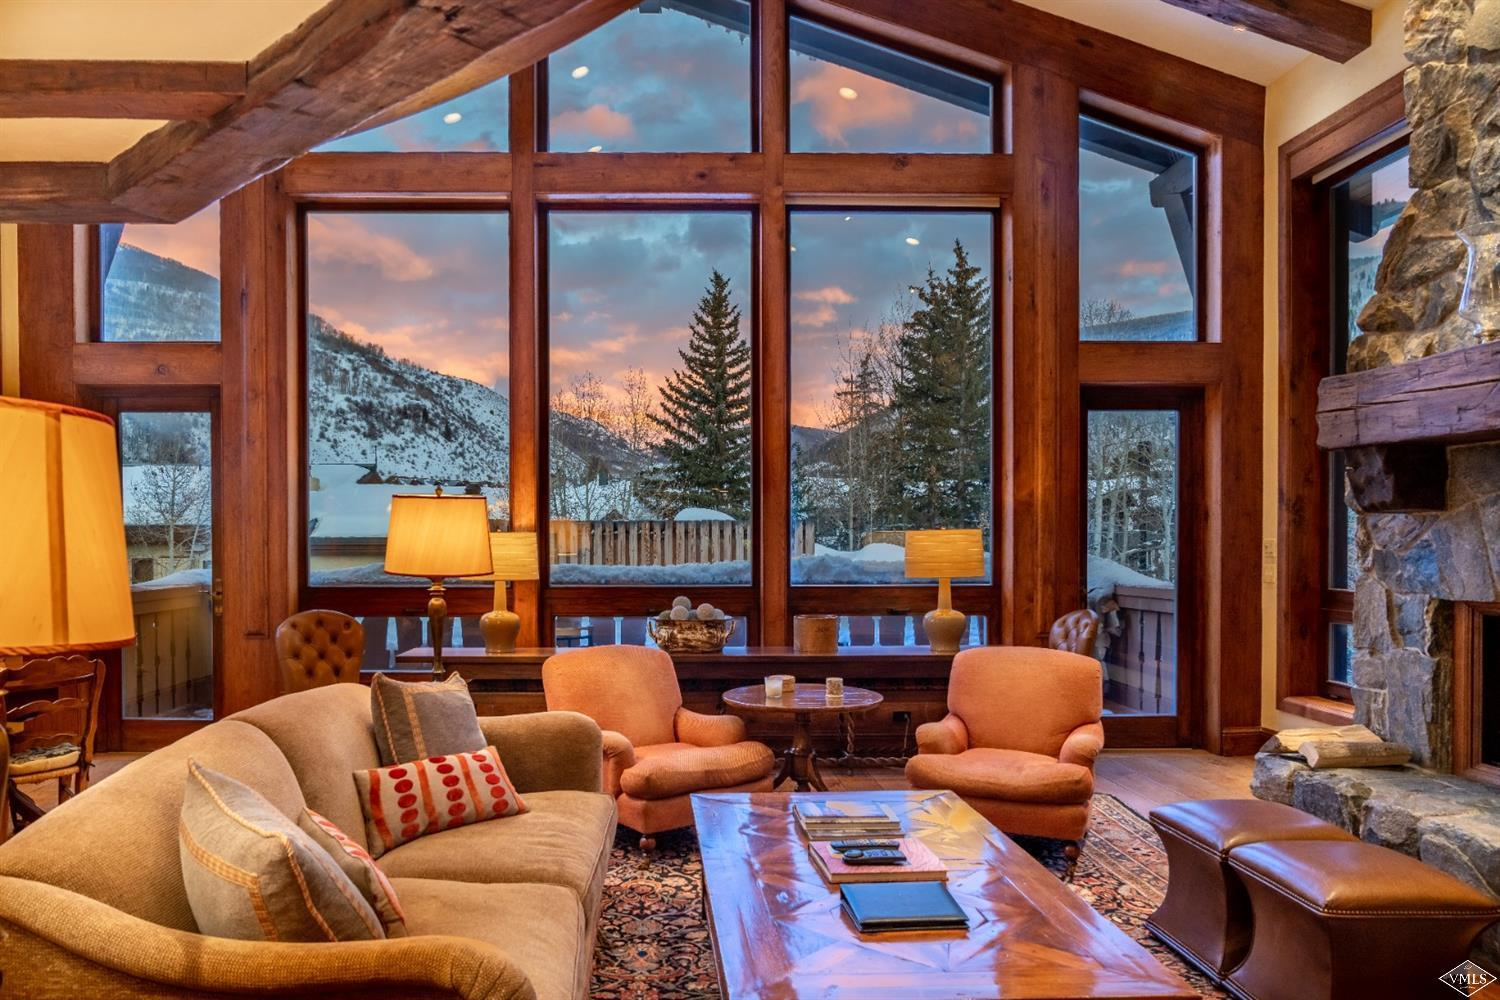 A rare opportunity to own one of the most unique units in the Lodge at Vail! This beautiful, oversize 3 bedroom offers a spacious living area and media room. Enjoy huge views from one of the best decks in building. Just steps to the slopes, restaurants, and shopping! The Lodge at Vail offers luxury amenities including spa/fitness center, outdoor pool and hot tubs, front desk & concierge services, bell services, and many more. This unit also comes with a Vail Mountain Club social membership.